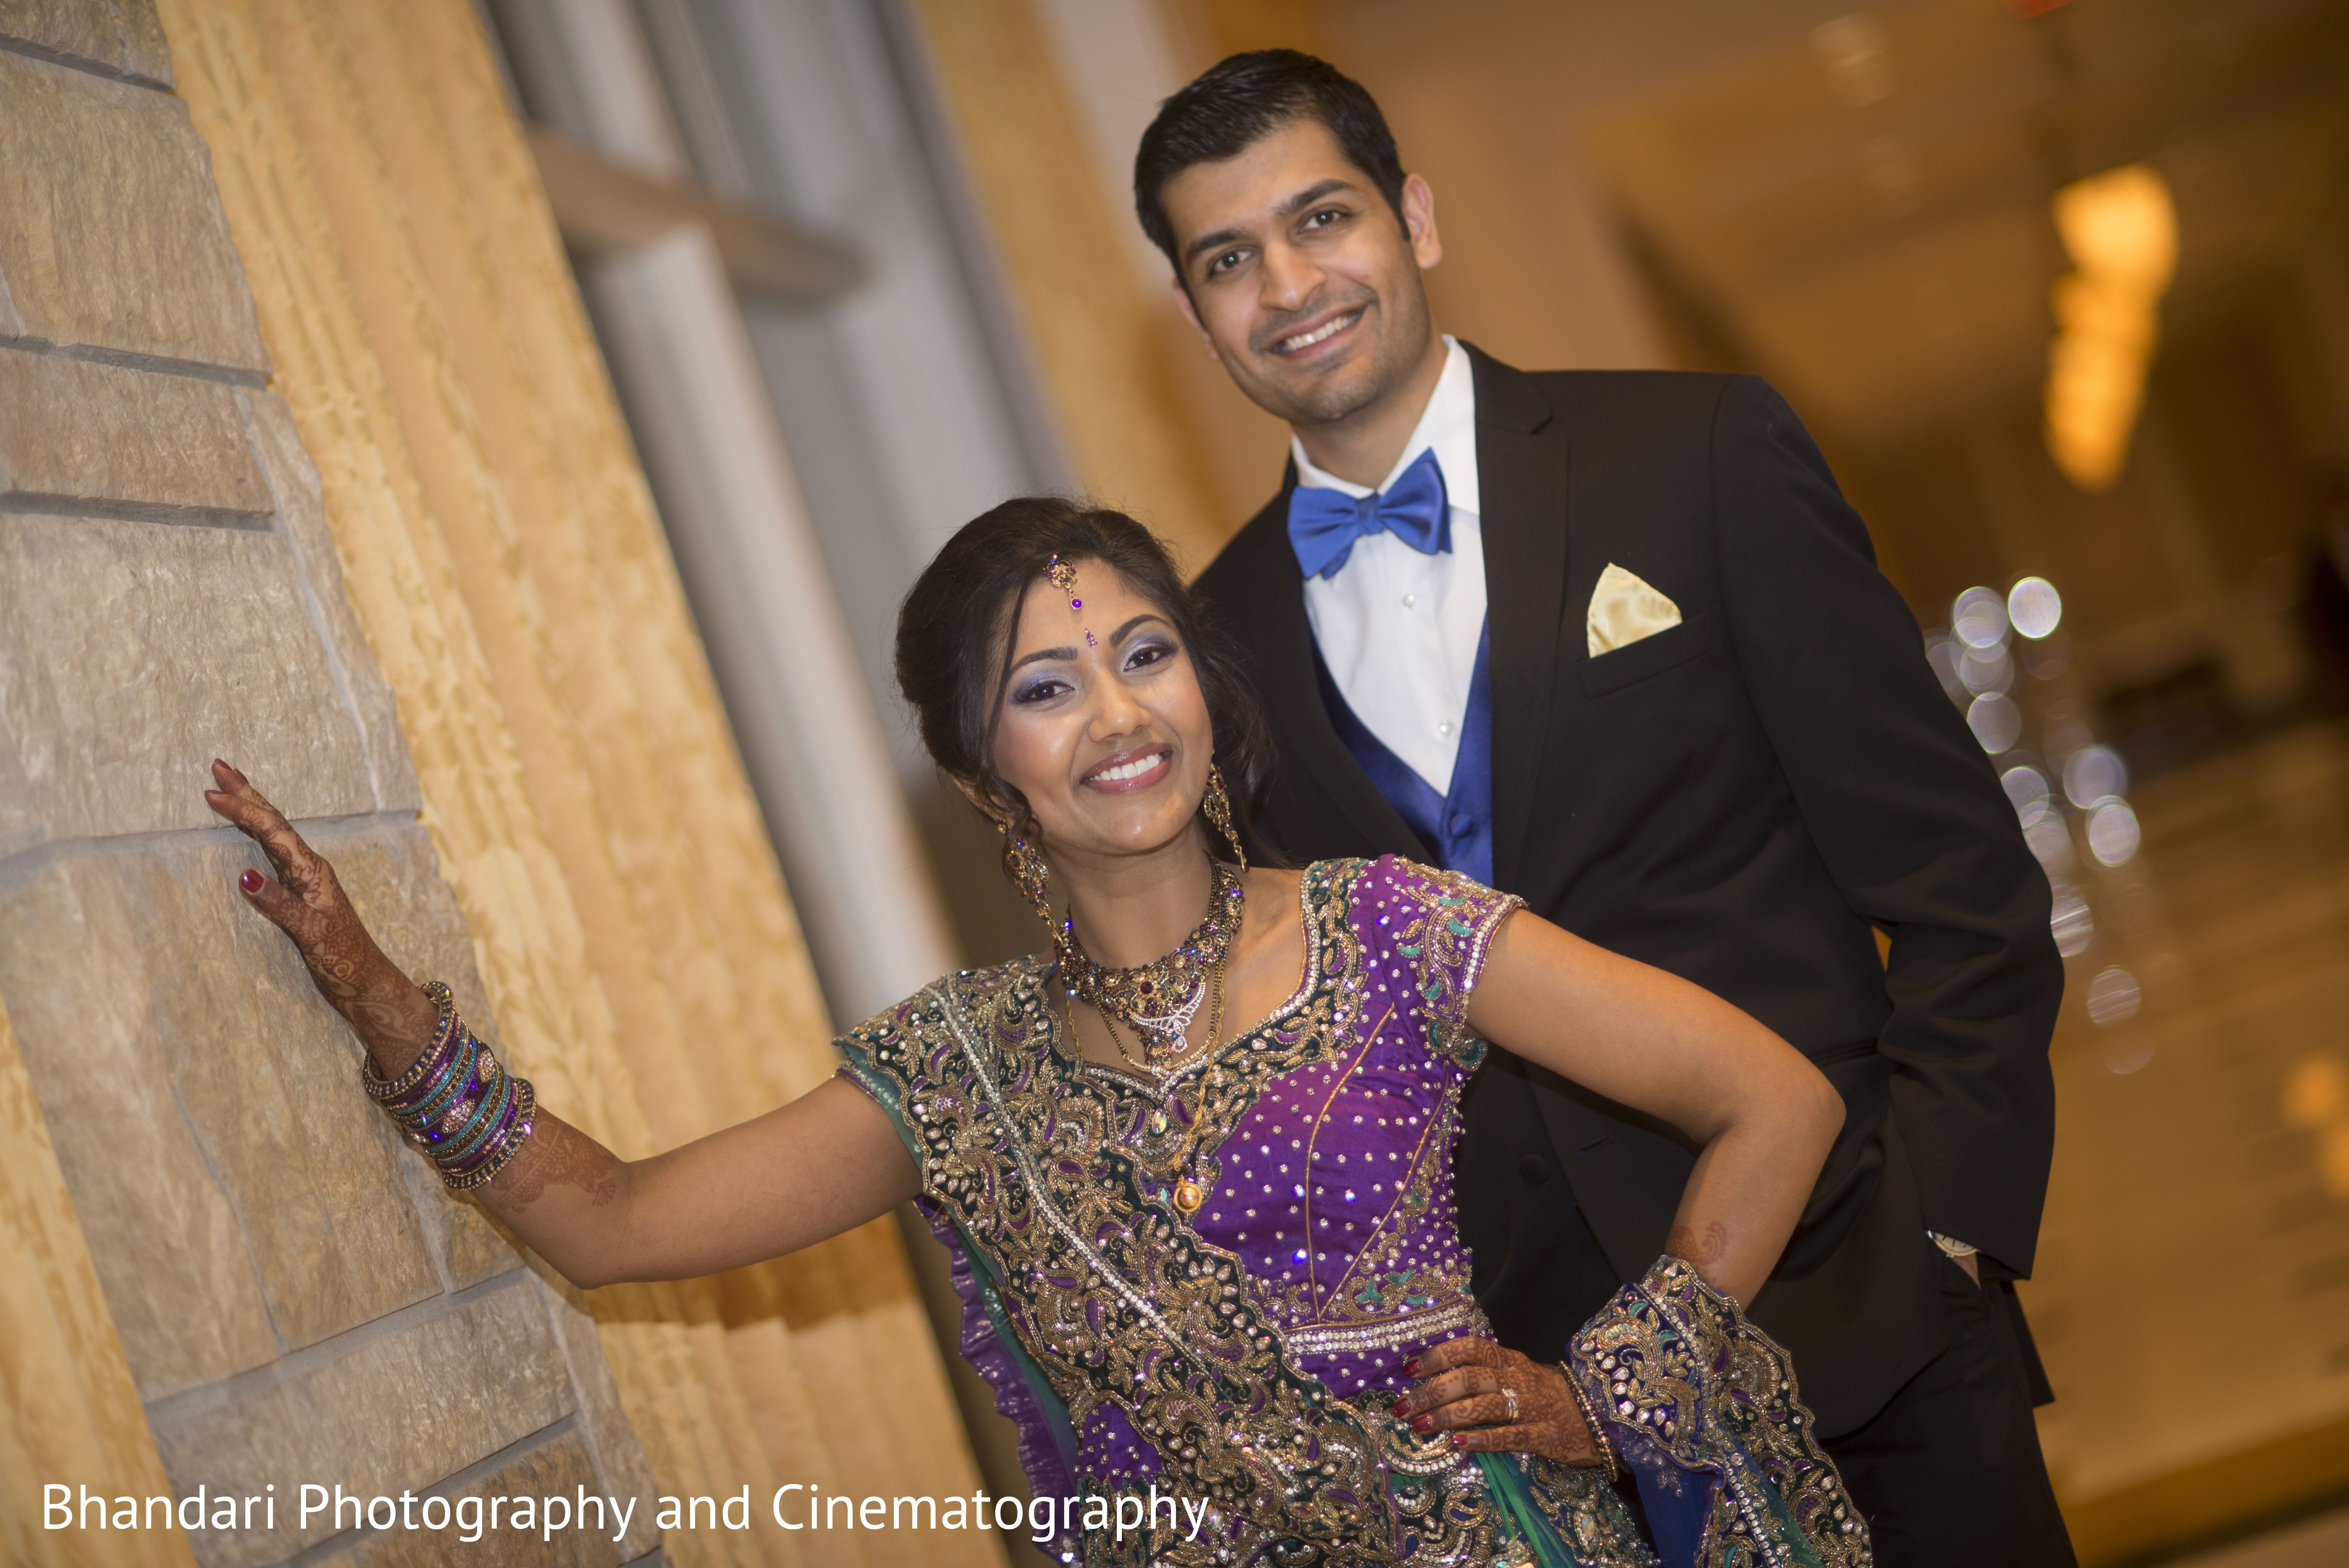 bloomfield hills hindu personals Currently, she lives in bloomfield hills, mi  her ethnicity is indian american, and religious views are listed as hindu smita is now married.